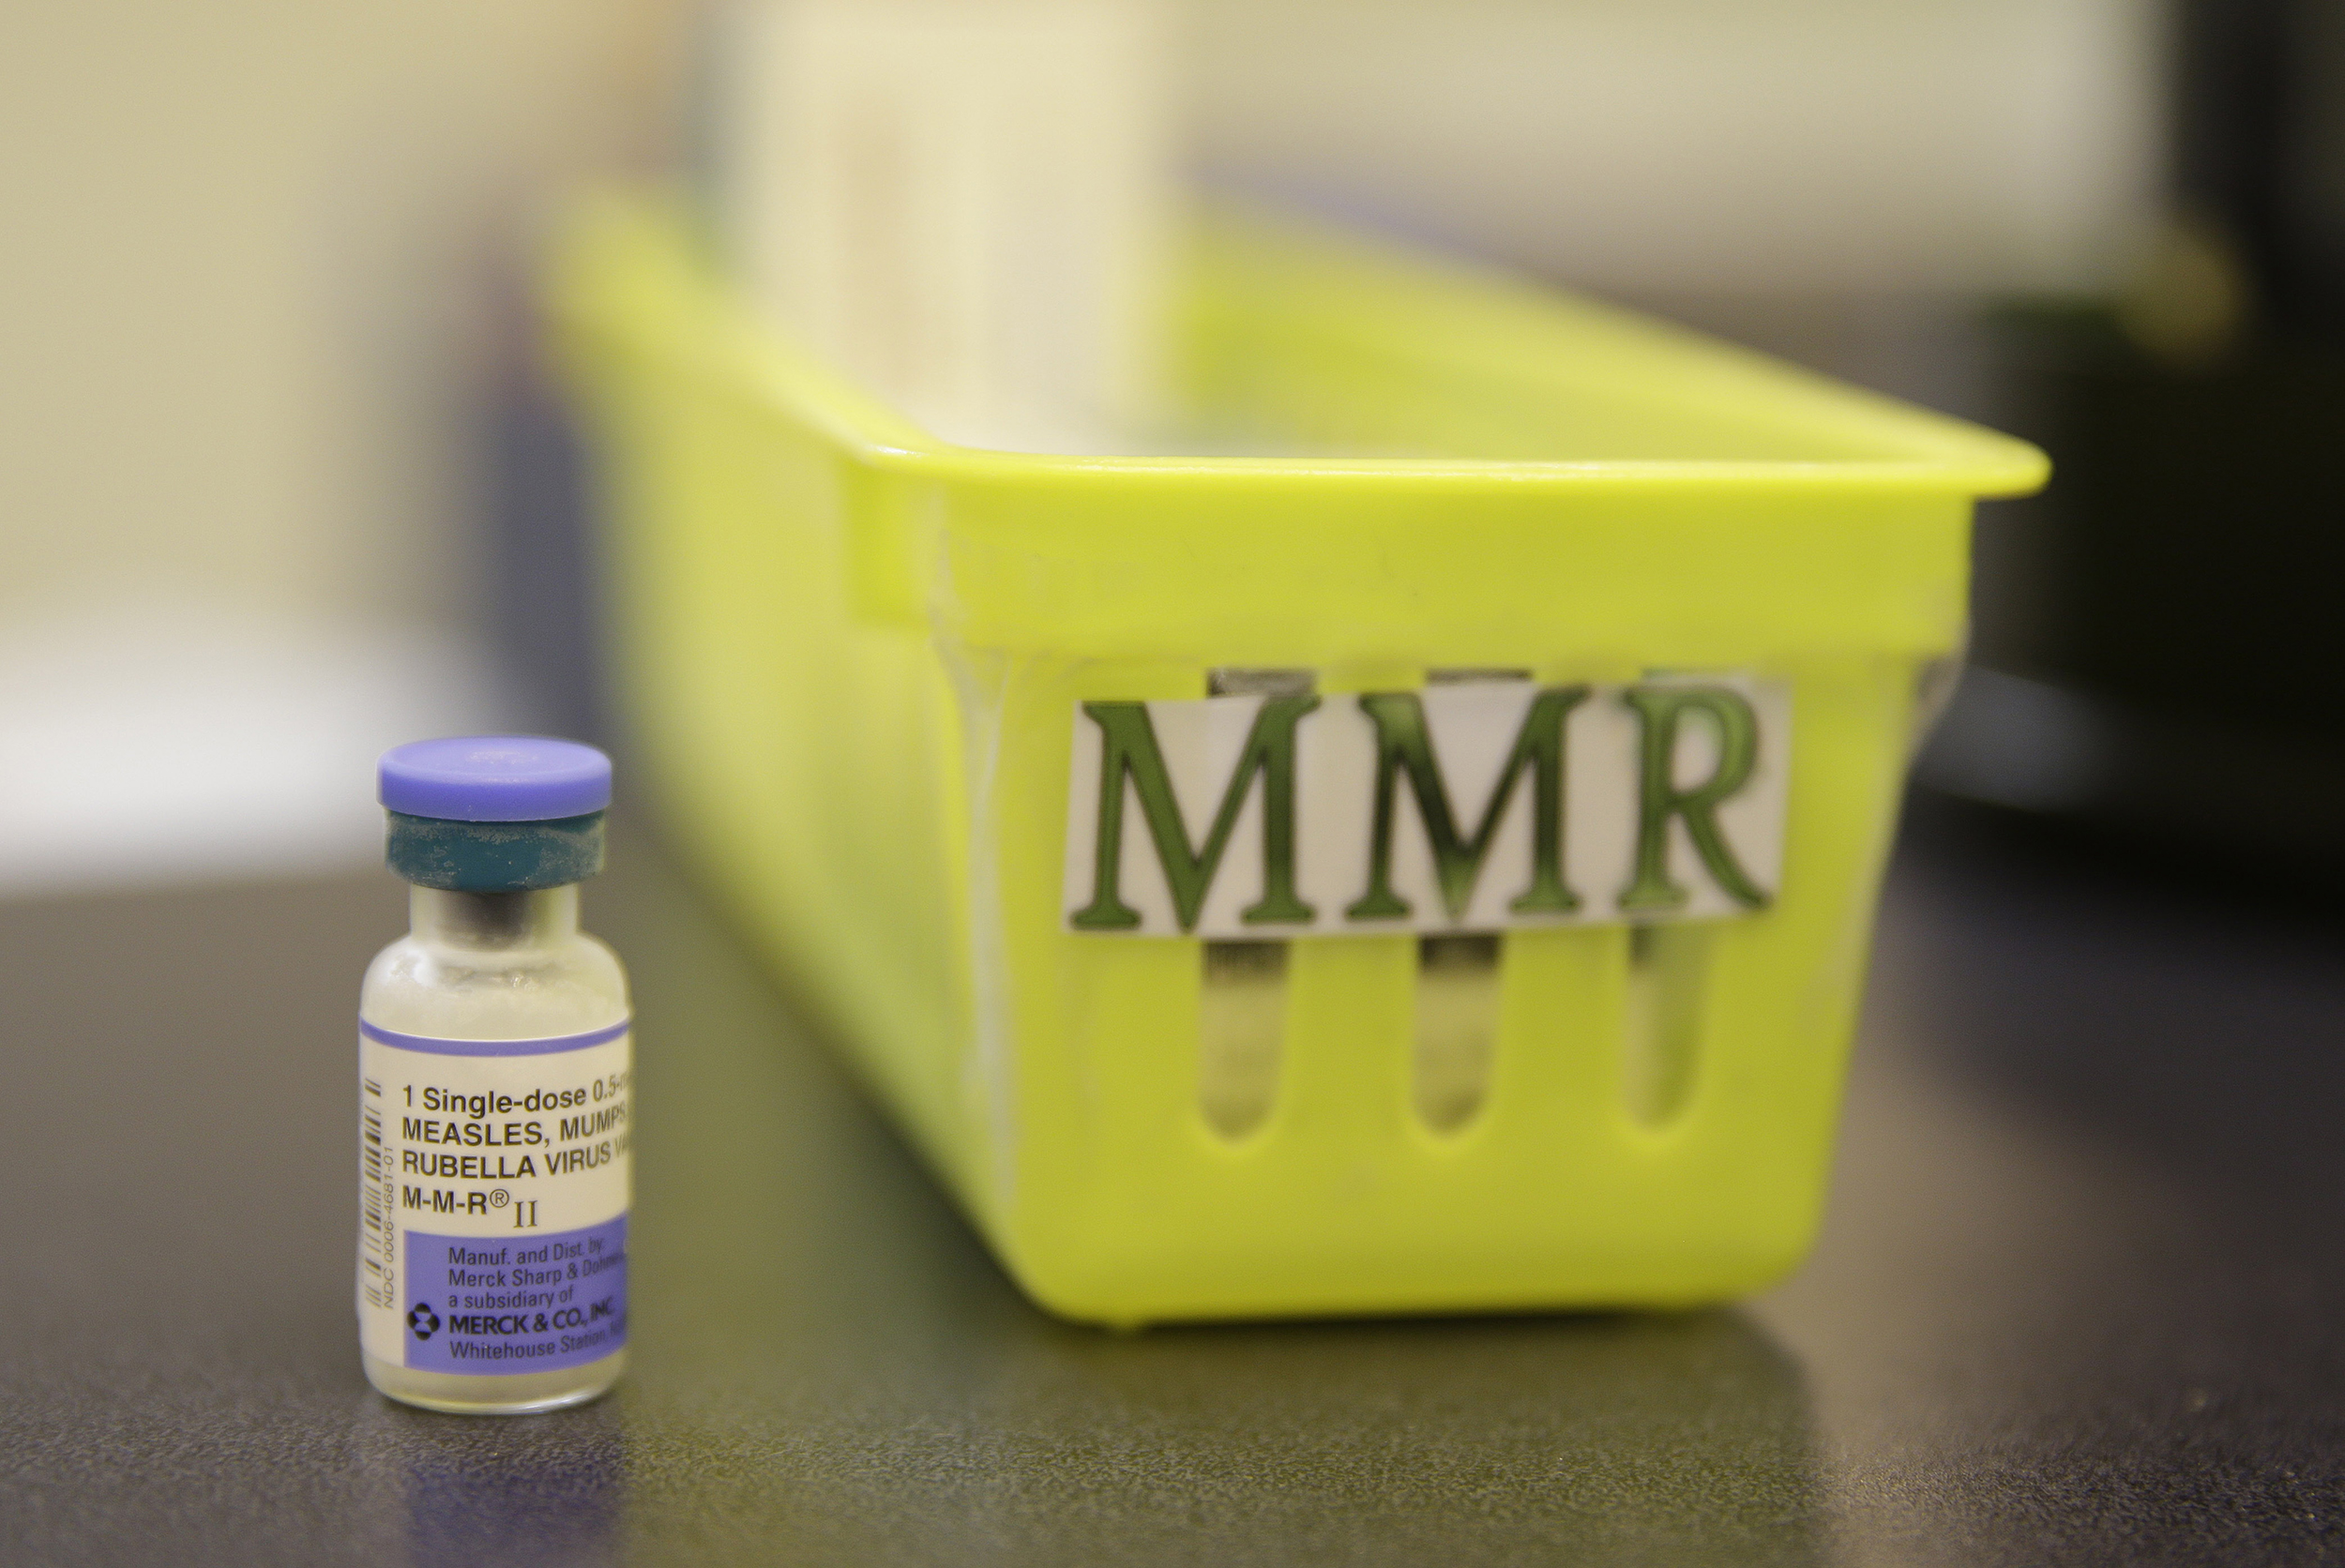 Measles cases hit record high in Europe